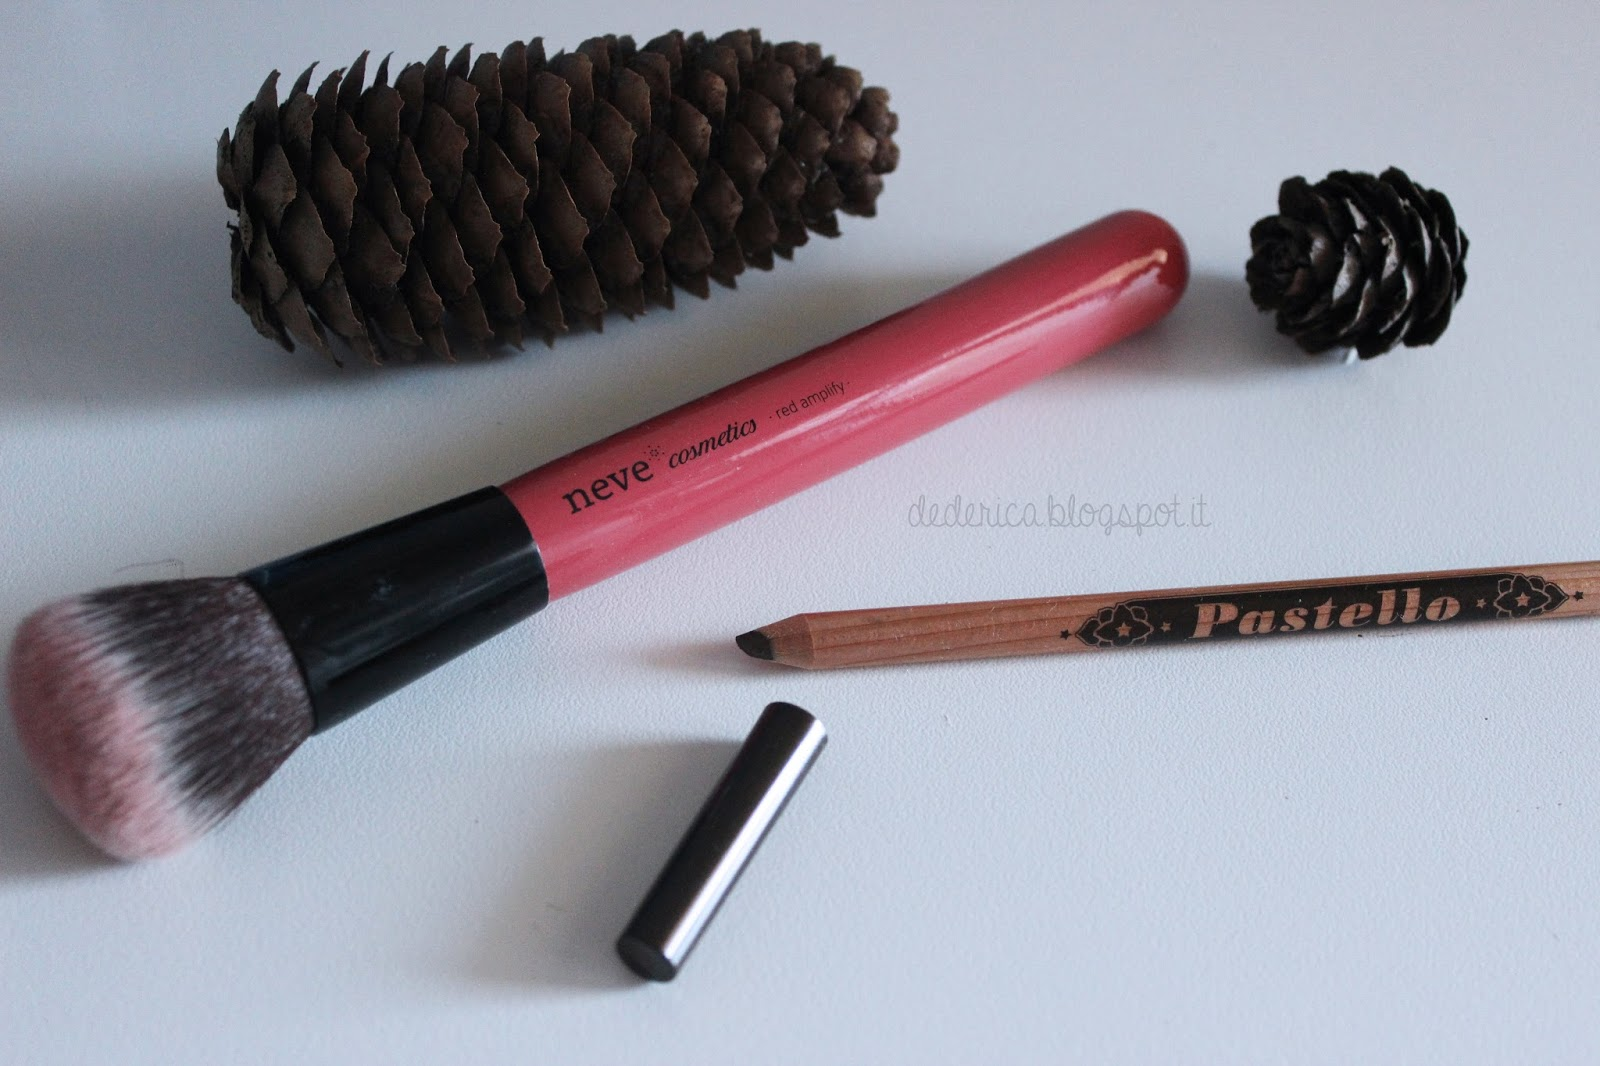 Neve Cosmetics Red Amplify Brush - Ego Pastello Occhi